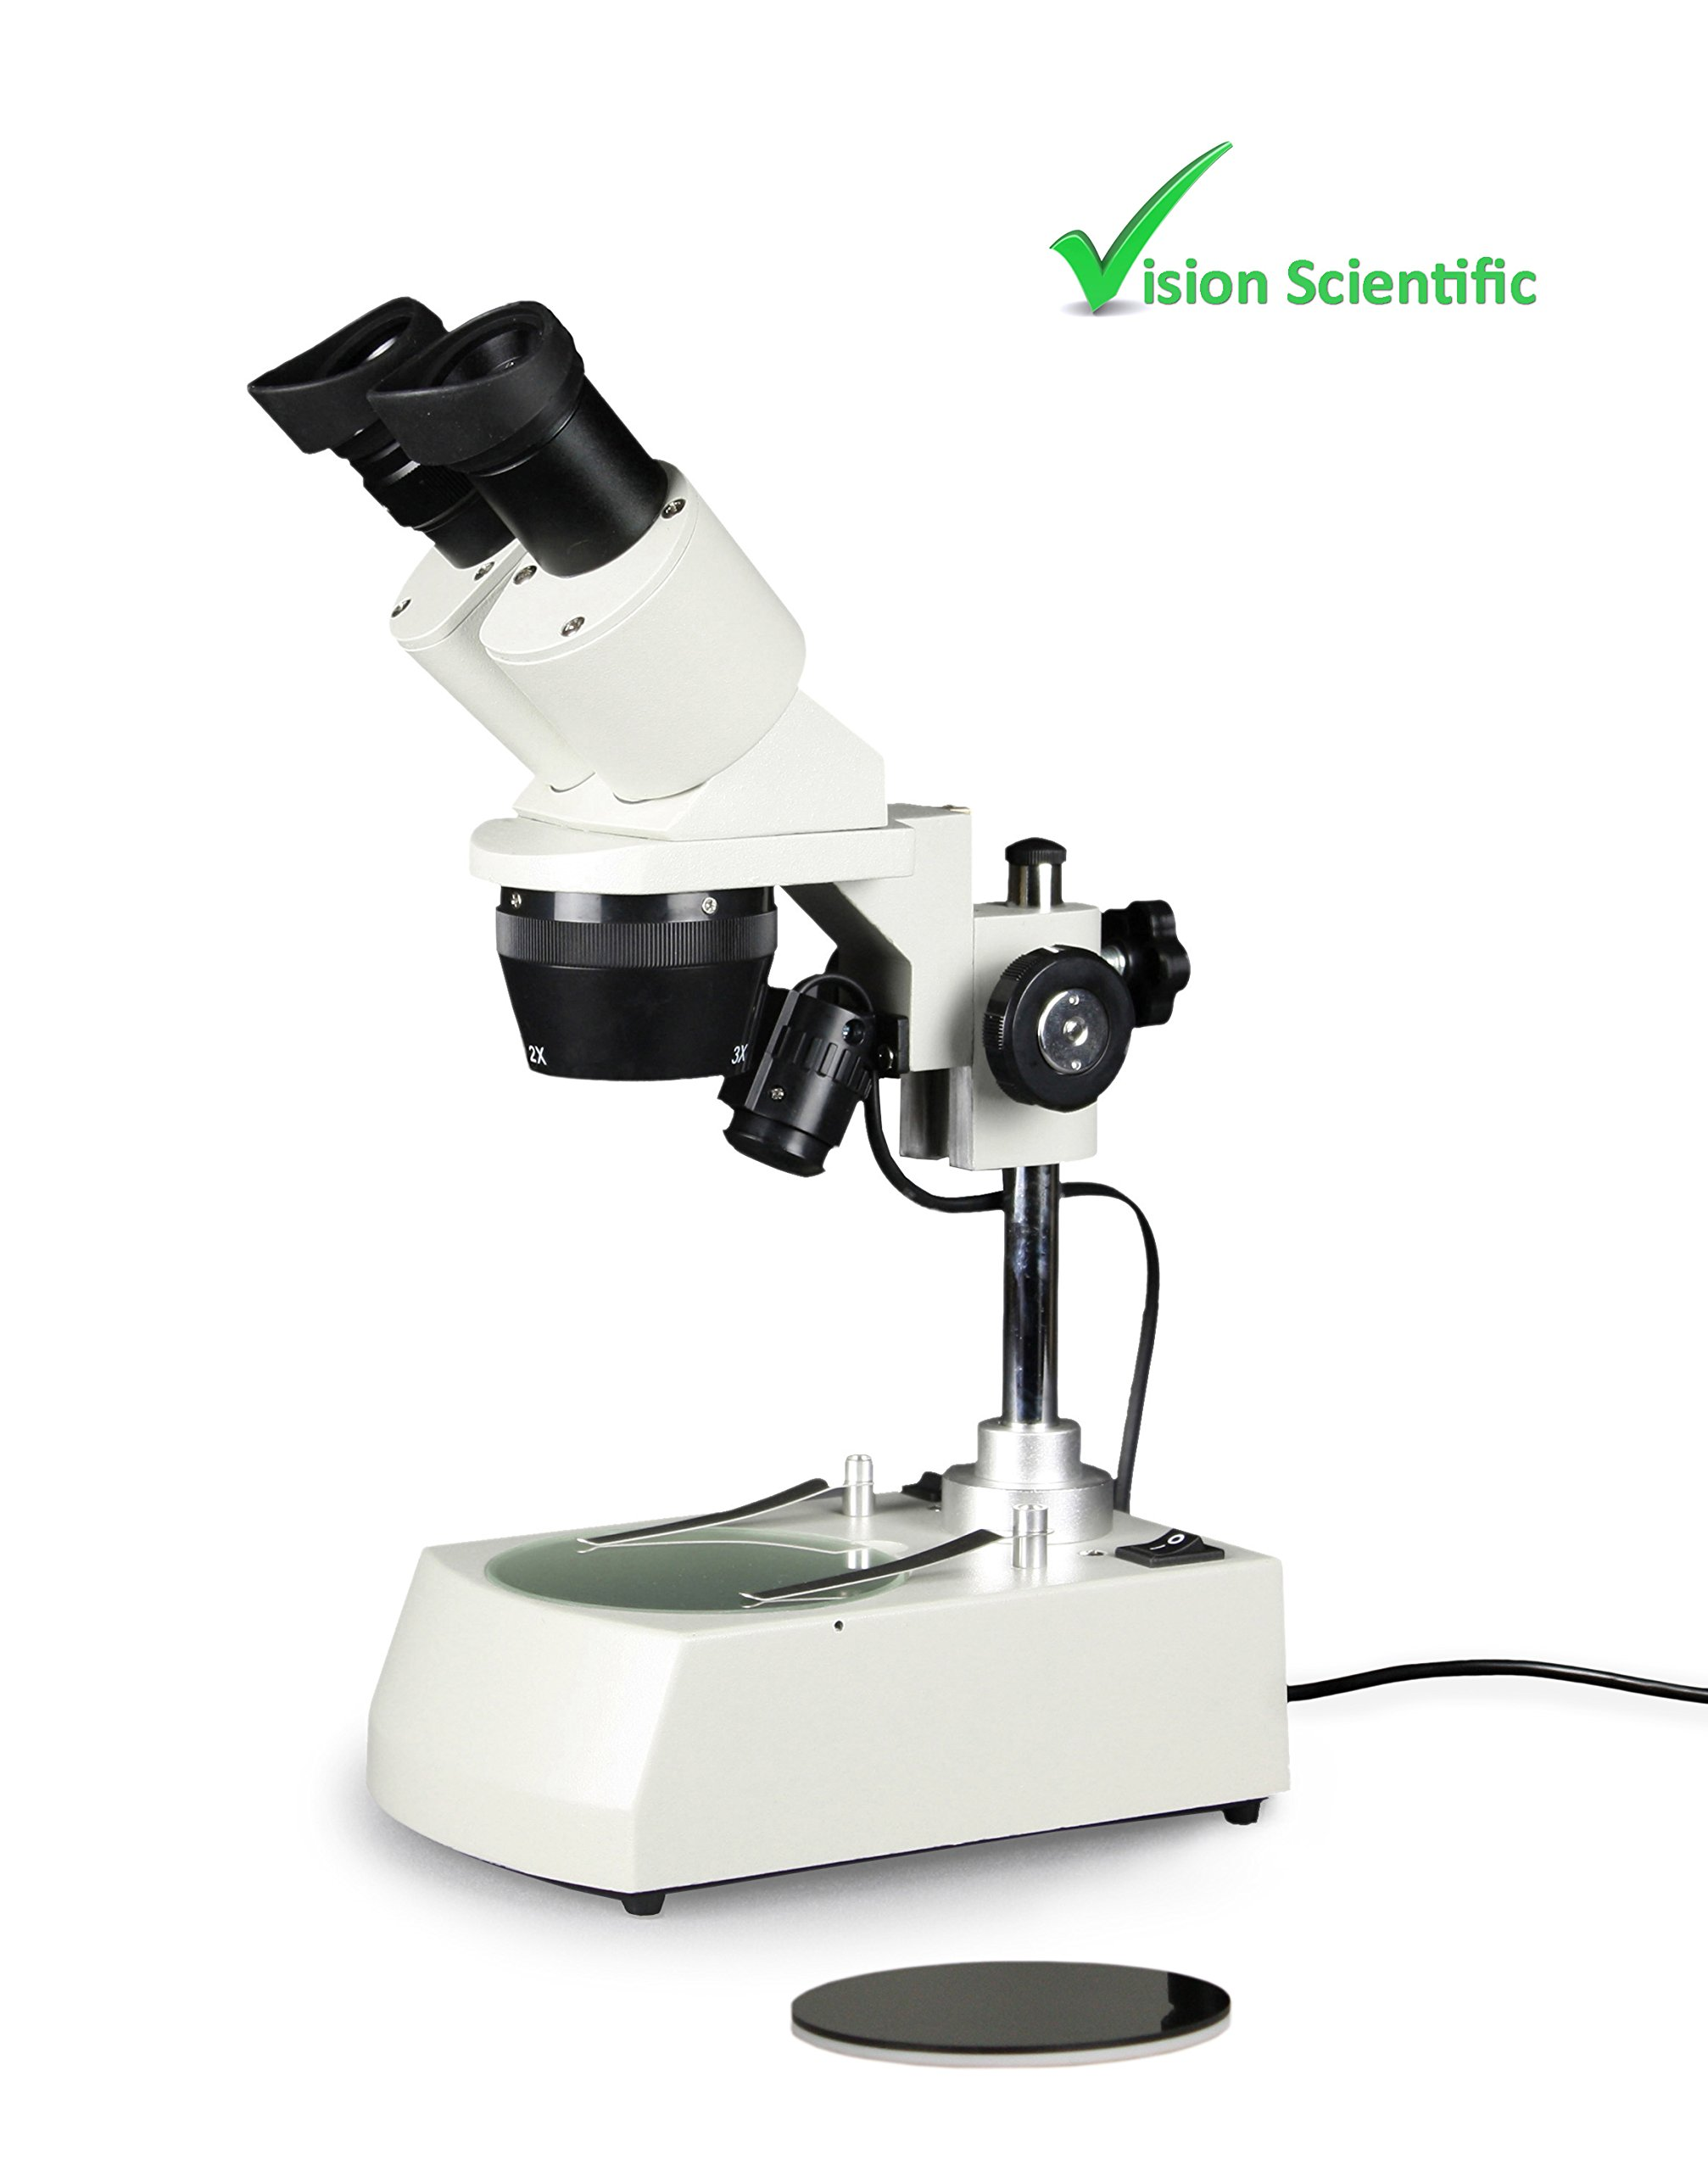 Vision Scientific VMS0002-LD-234 Tri-Power Binocular Stereo Microscope, 2X, 3X,4X Objective, Paired 10X WF Eyepiece, 20X, 30X, 40X Magnification, Top and Bottom LED Illumination, Post-Mounted Stand by Vision Scientific